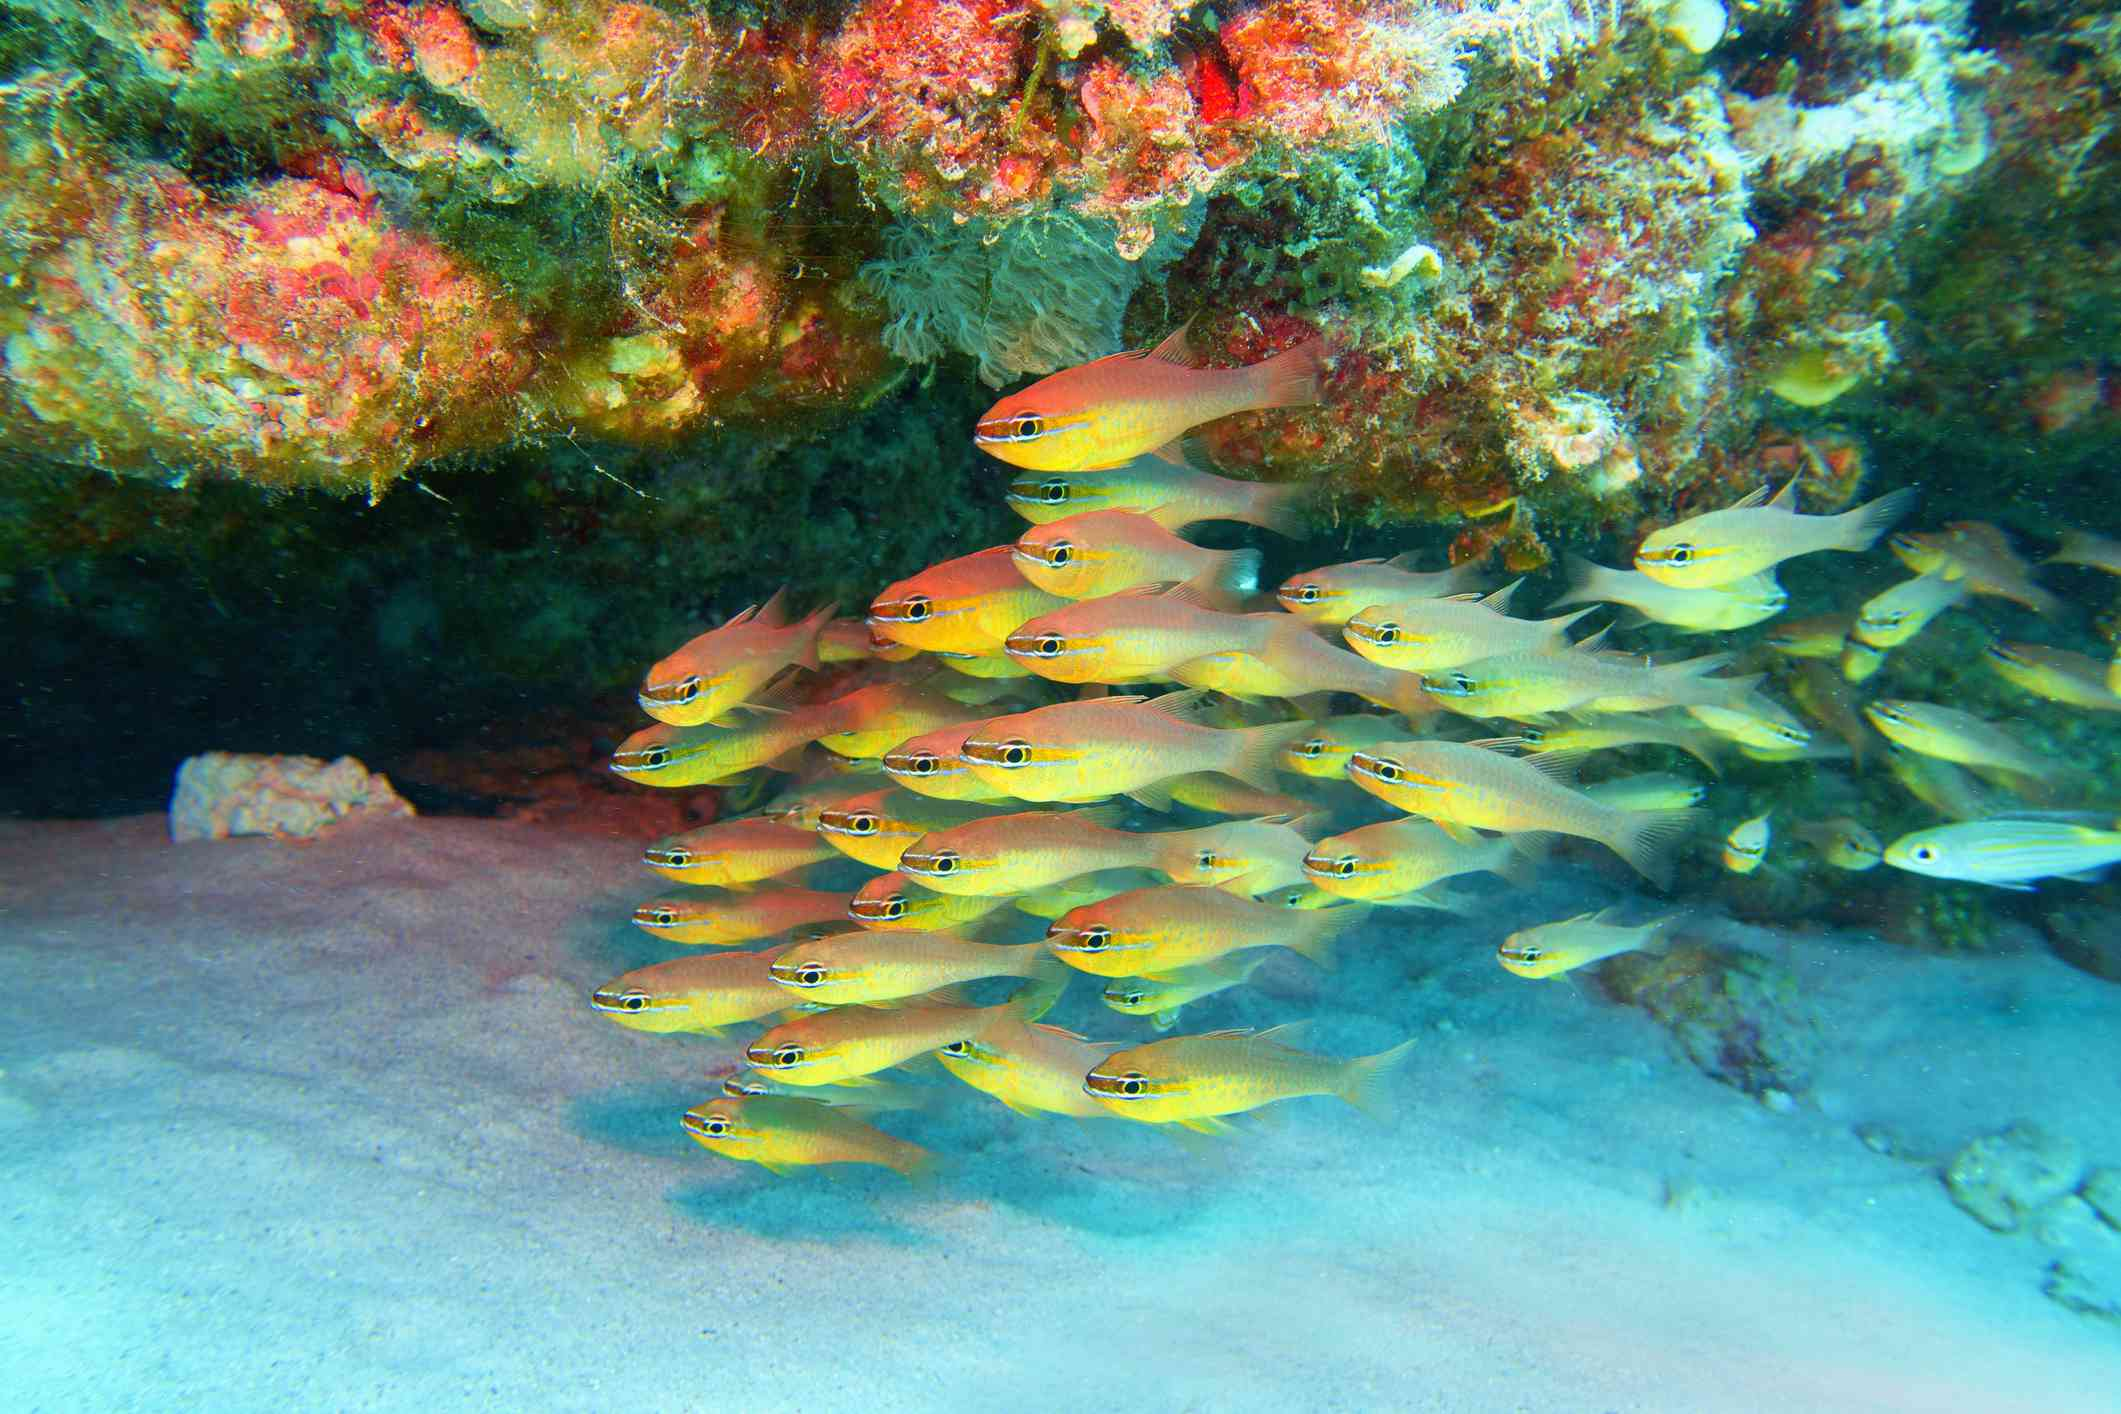 tropical coral reef on the white sandy ocean floor with a school of bright yellow Goldbelly Cardinalfish in Seychelles